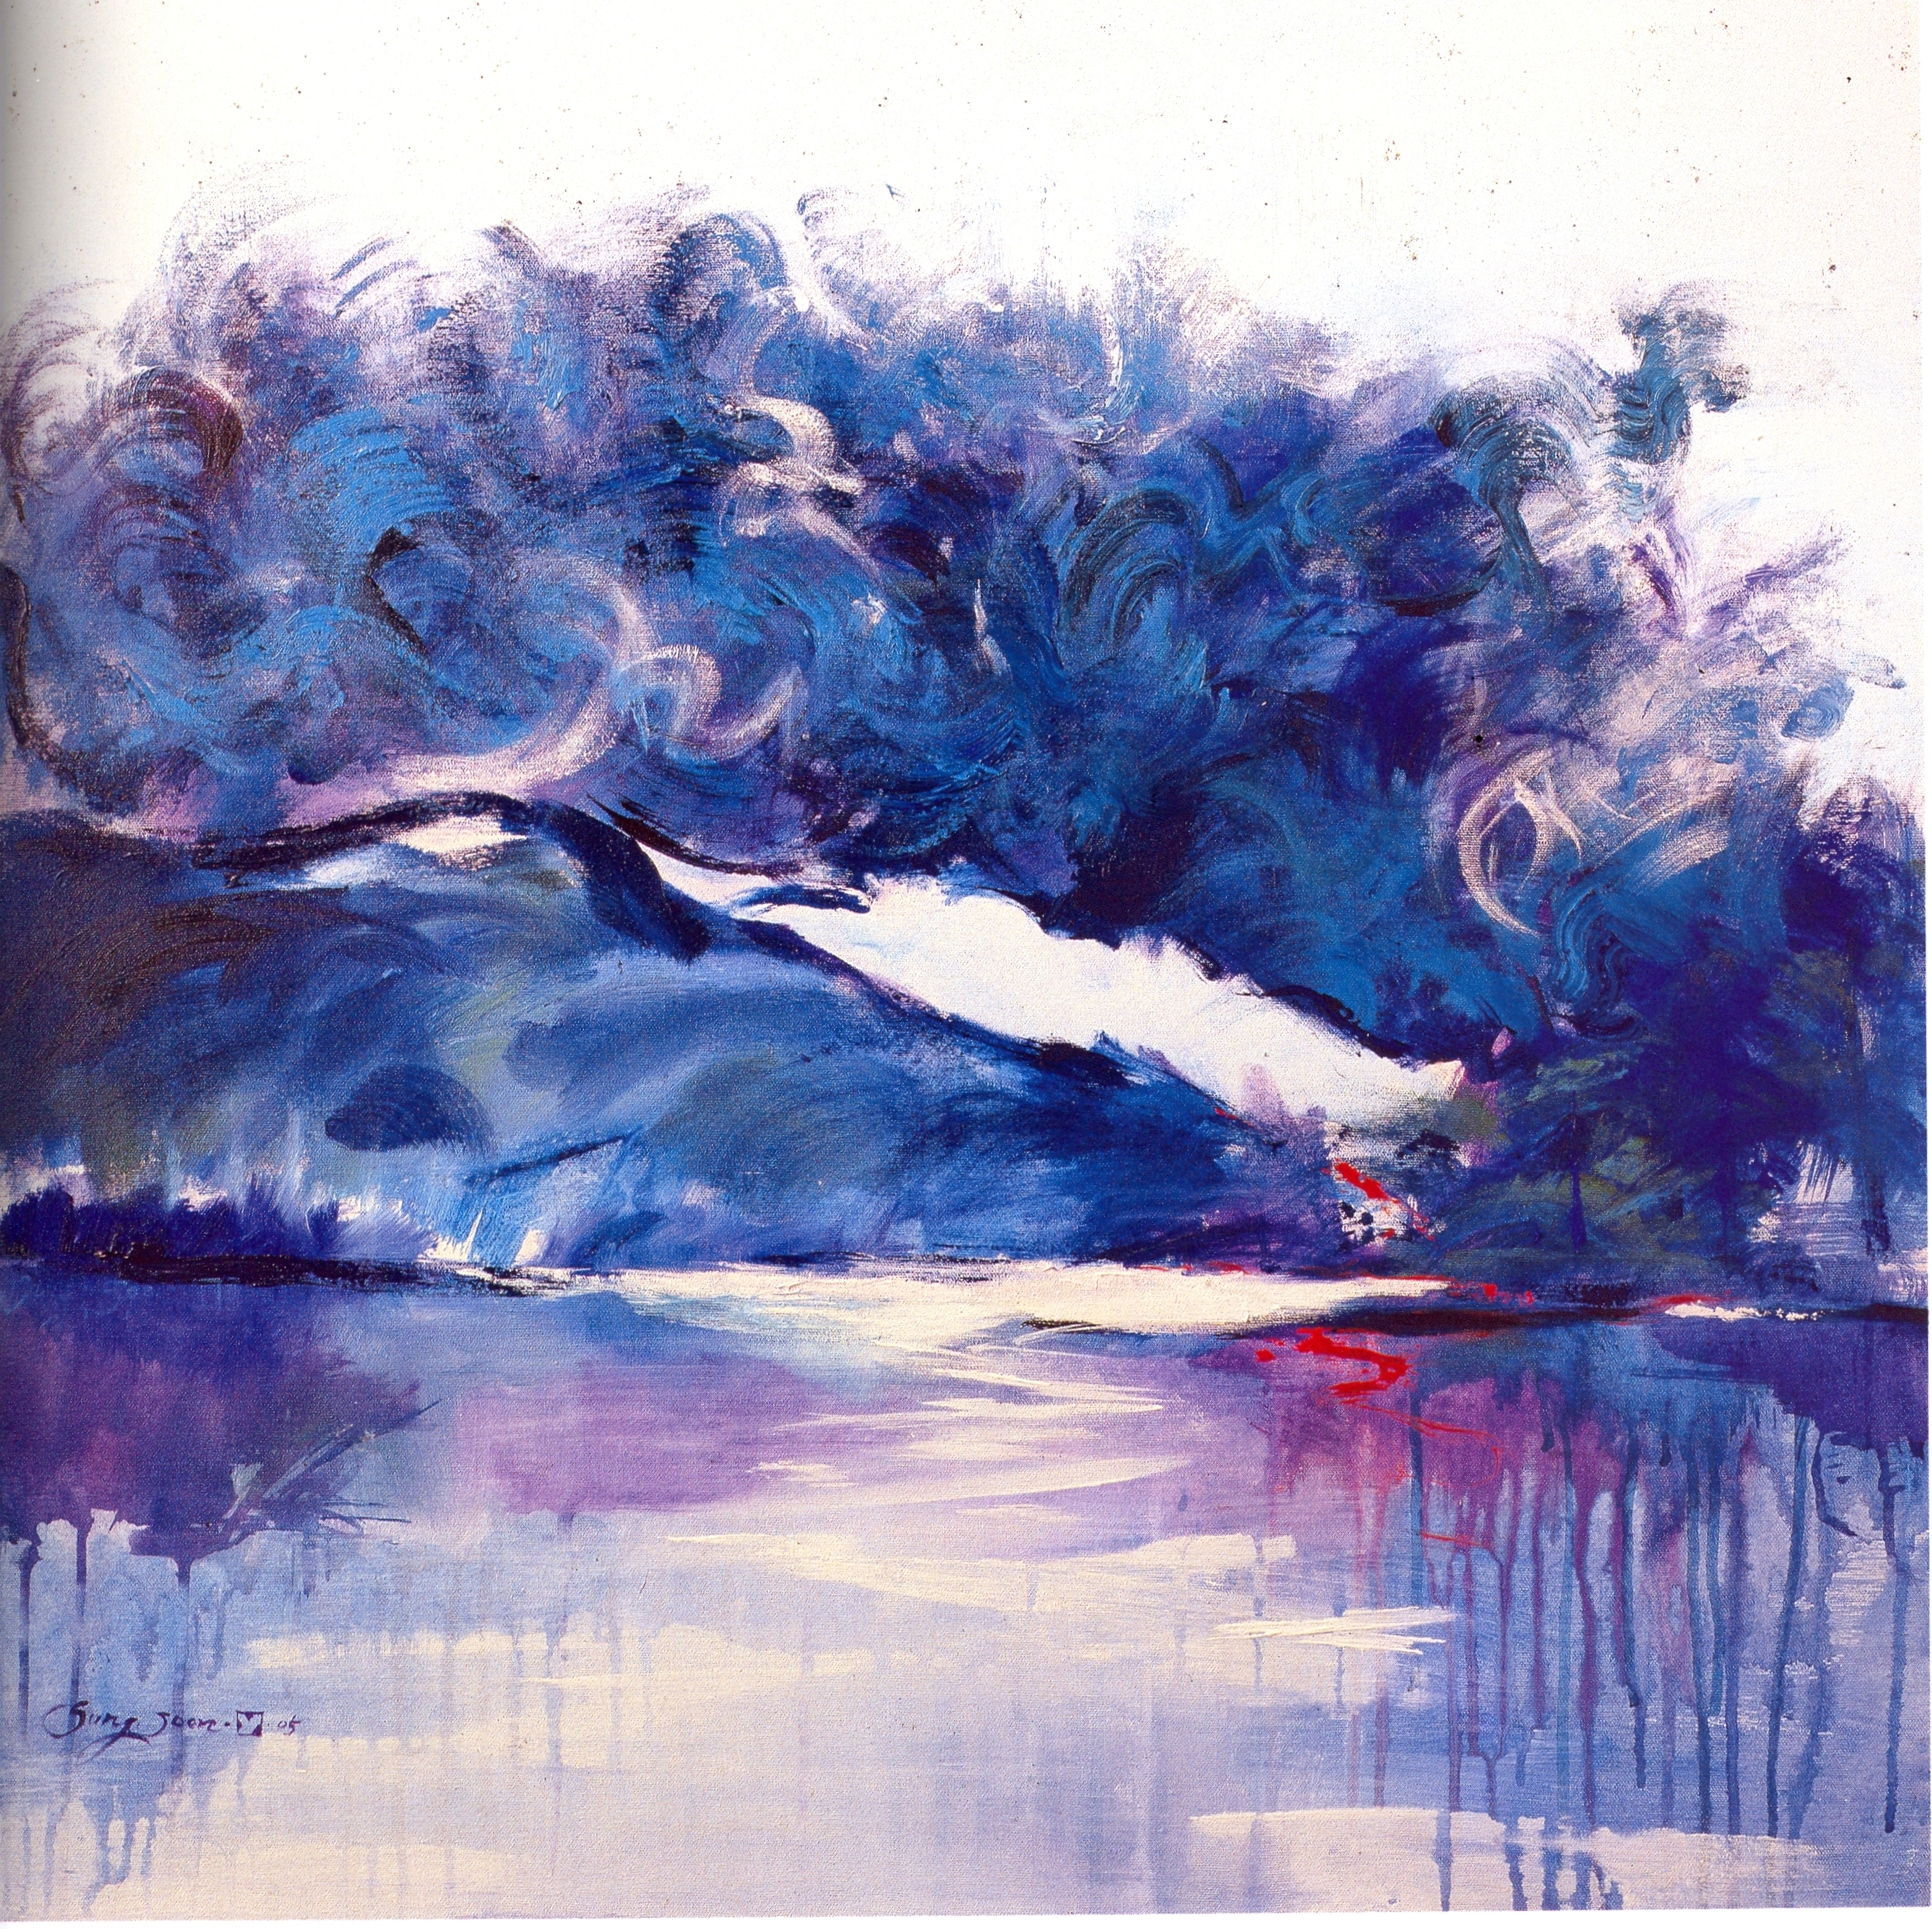 """Sung-Soon Yang    The Scenery of My Mind,   acrylic on canvas, 30"""" x 30"""", 2005"""